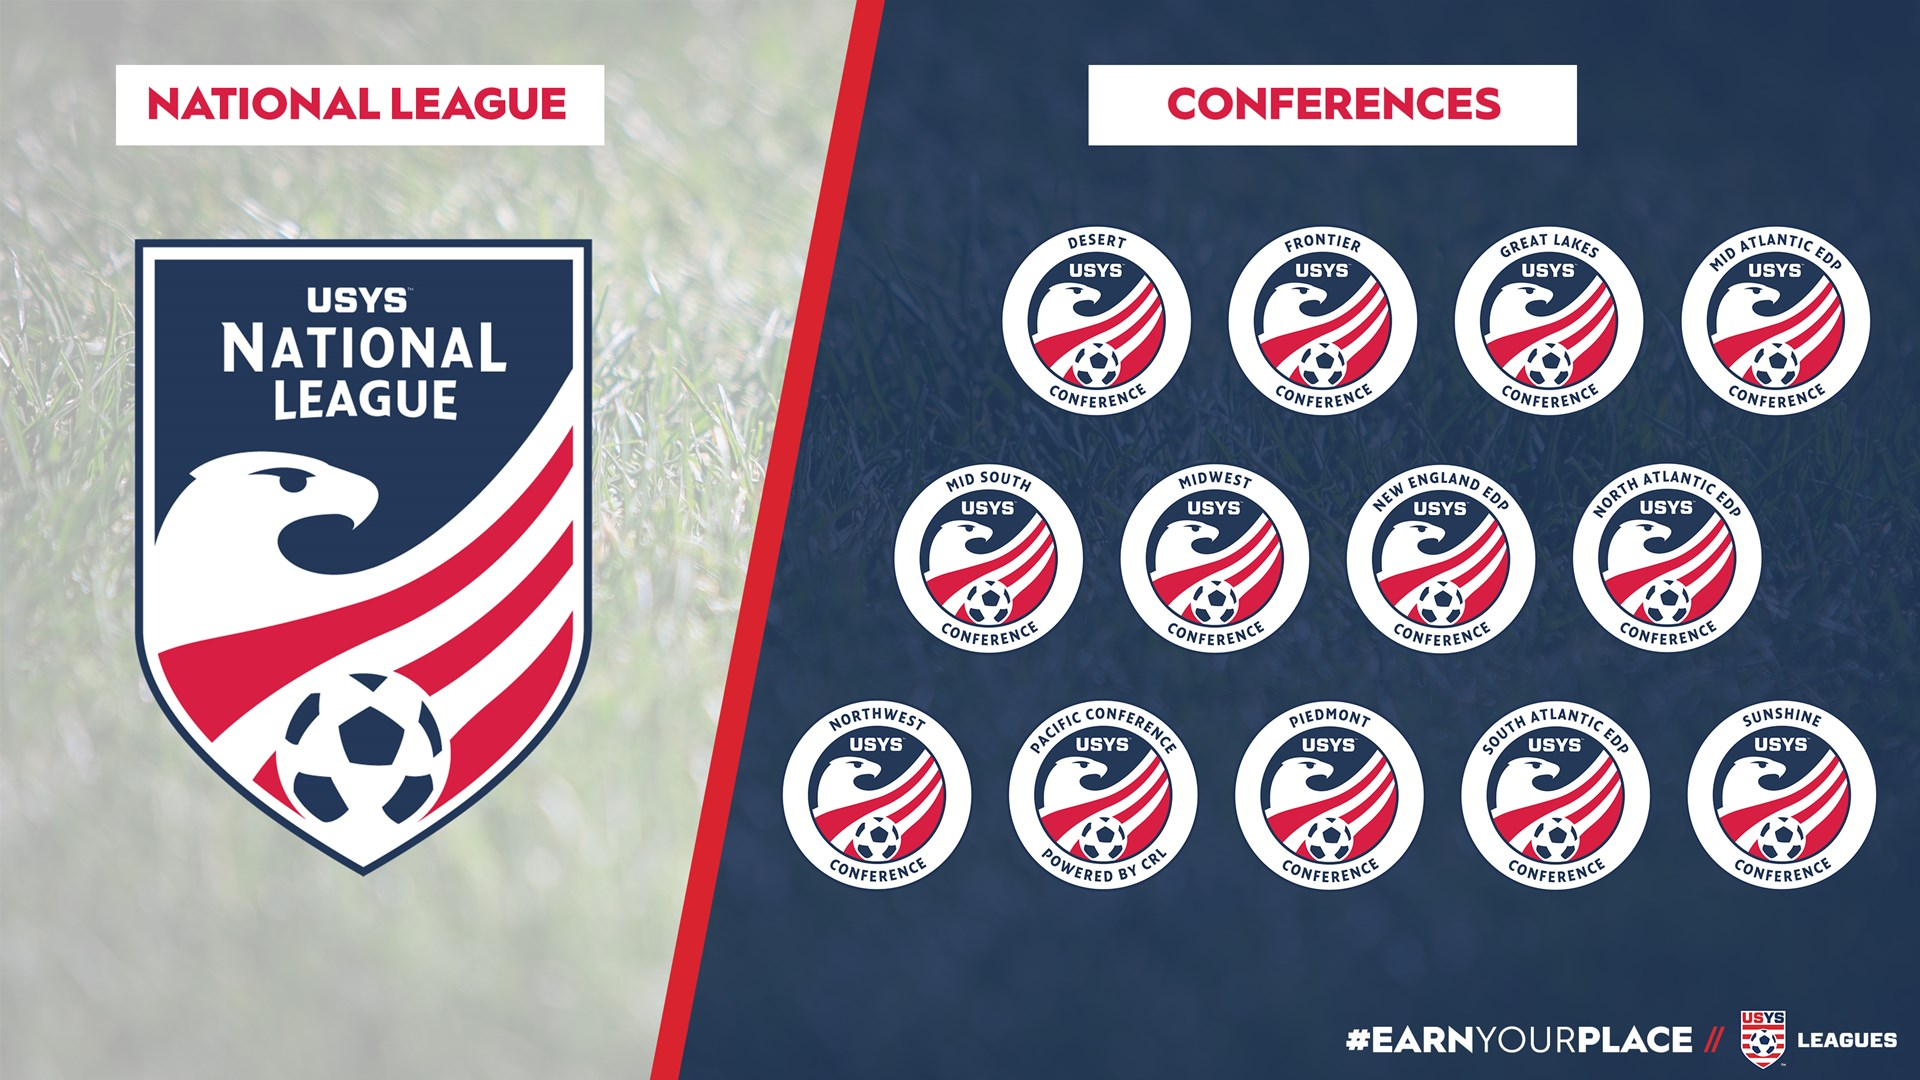 National League Conference